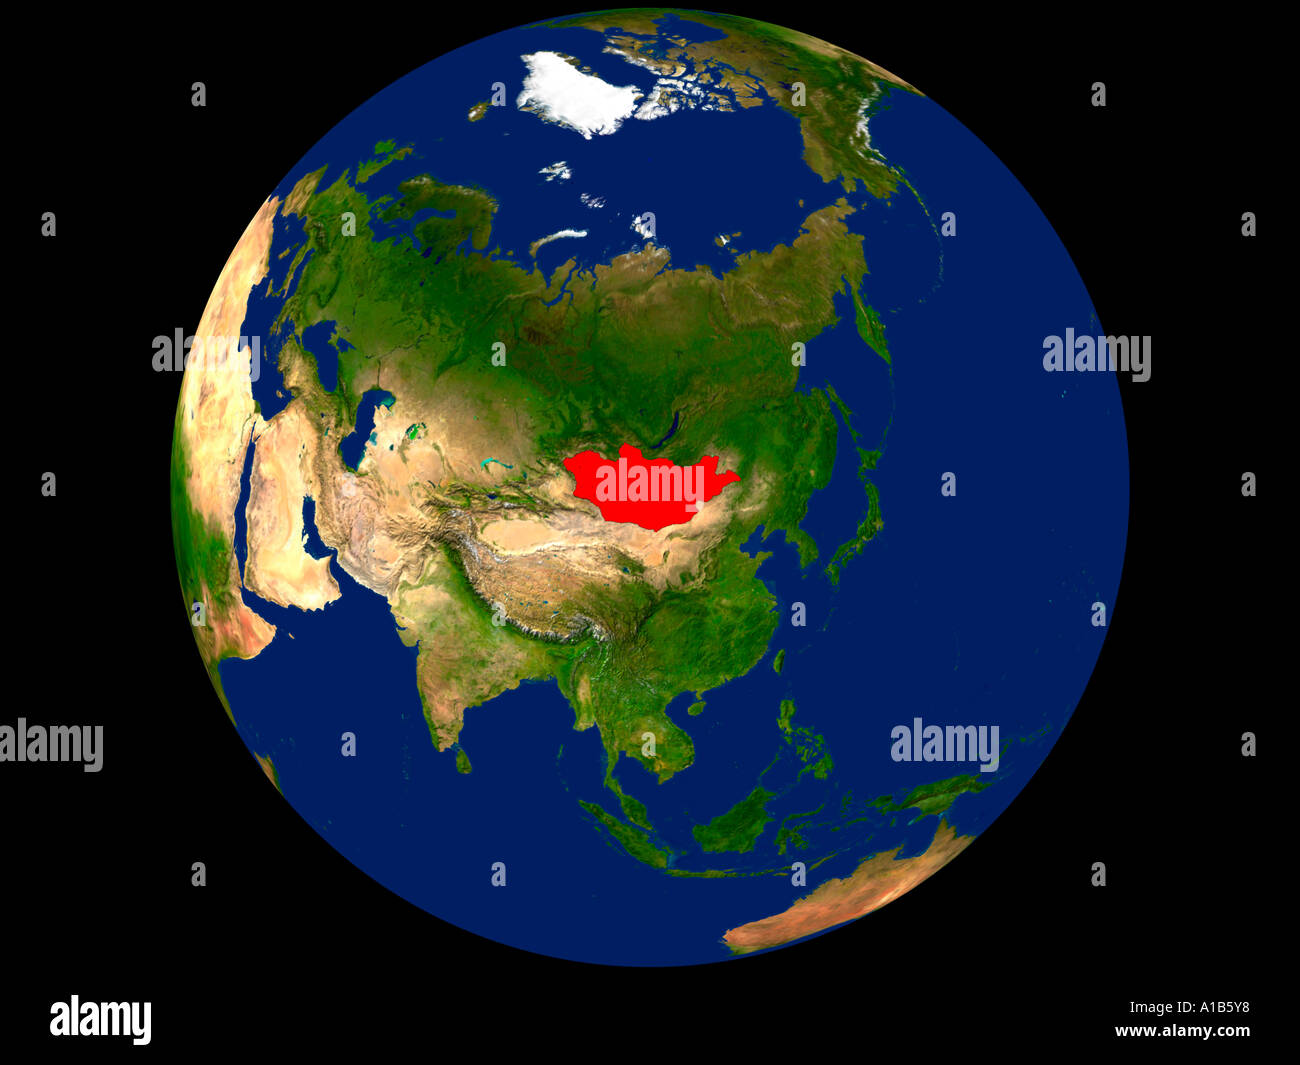 Picture of: Satellite Image Of Earth Showing Mongolia Highlighted Red Stock Photo Alamy